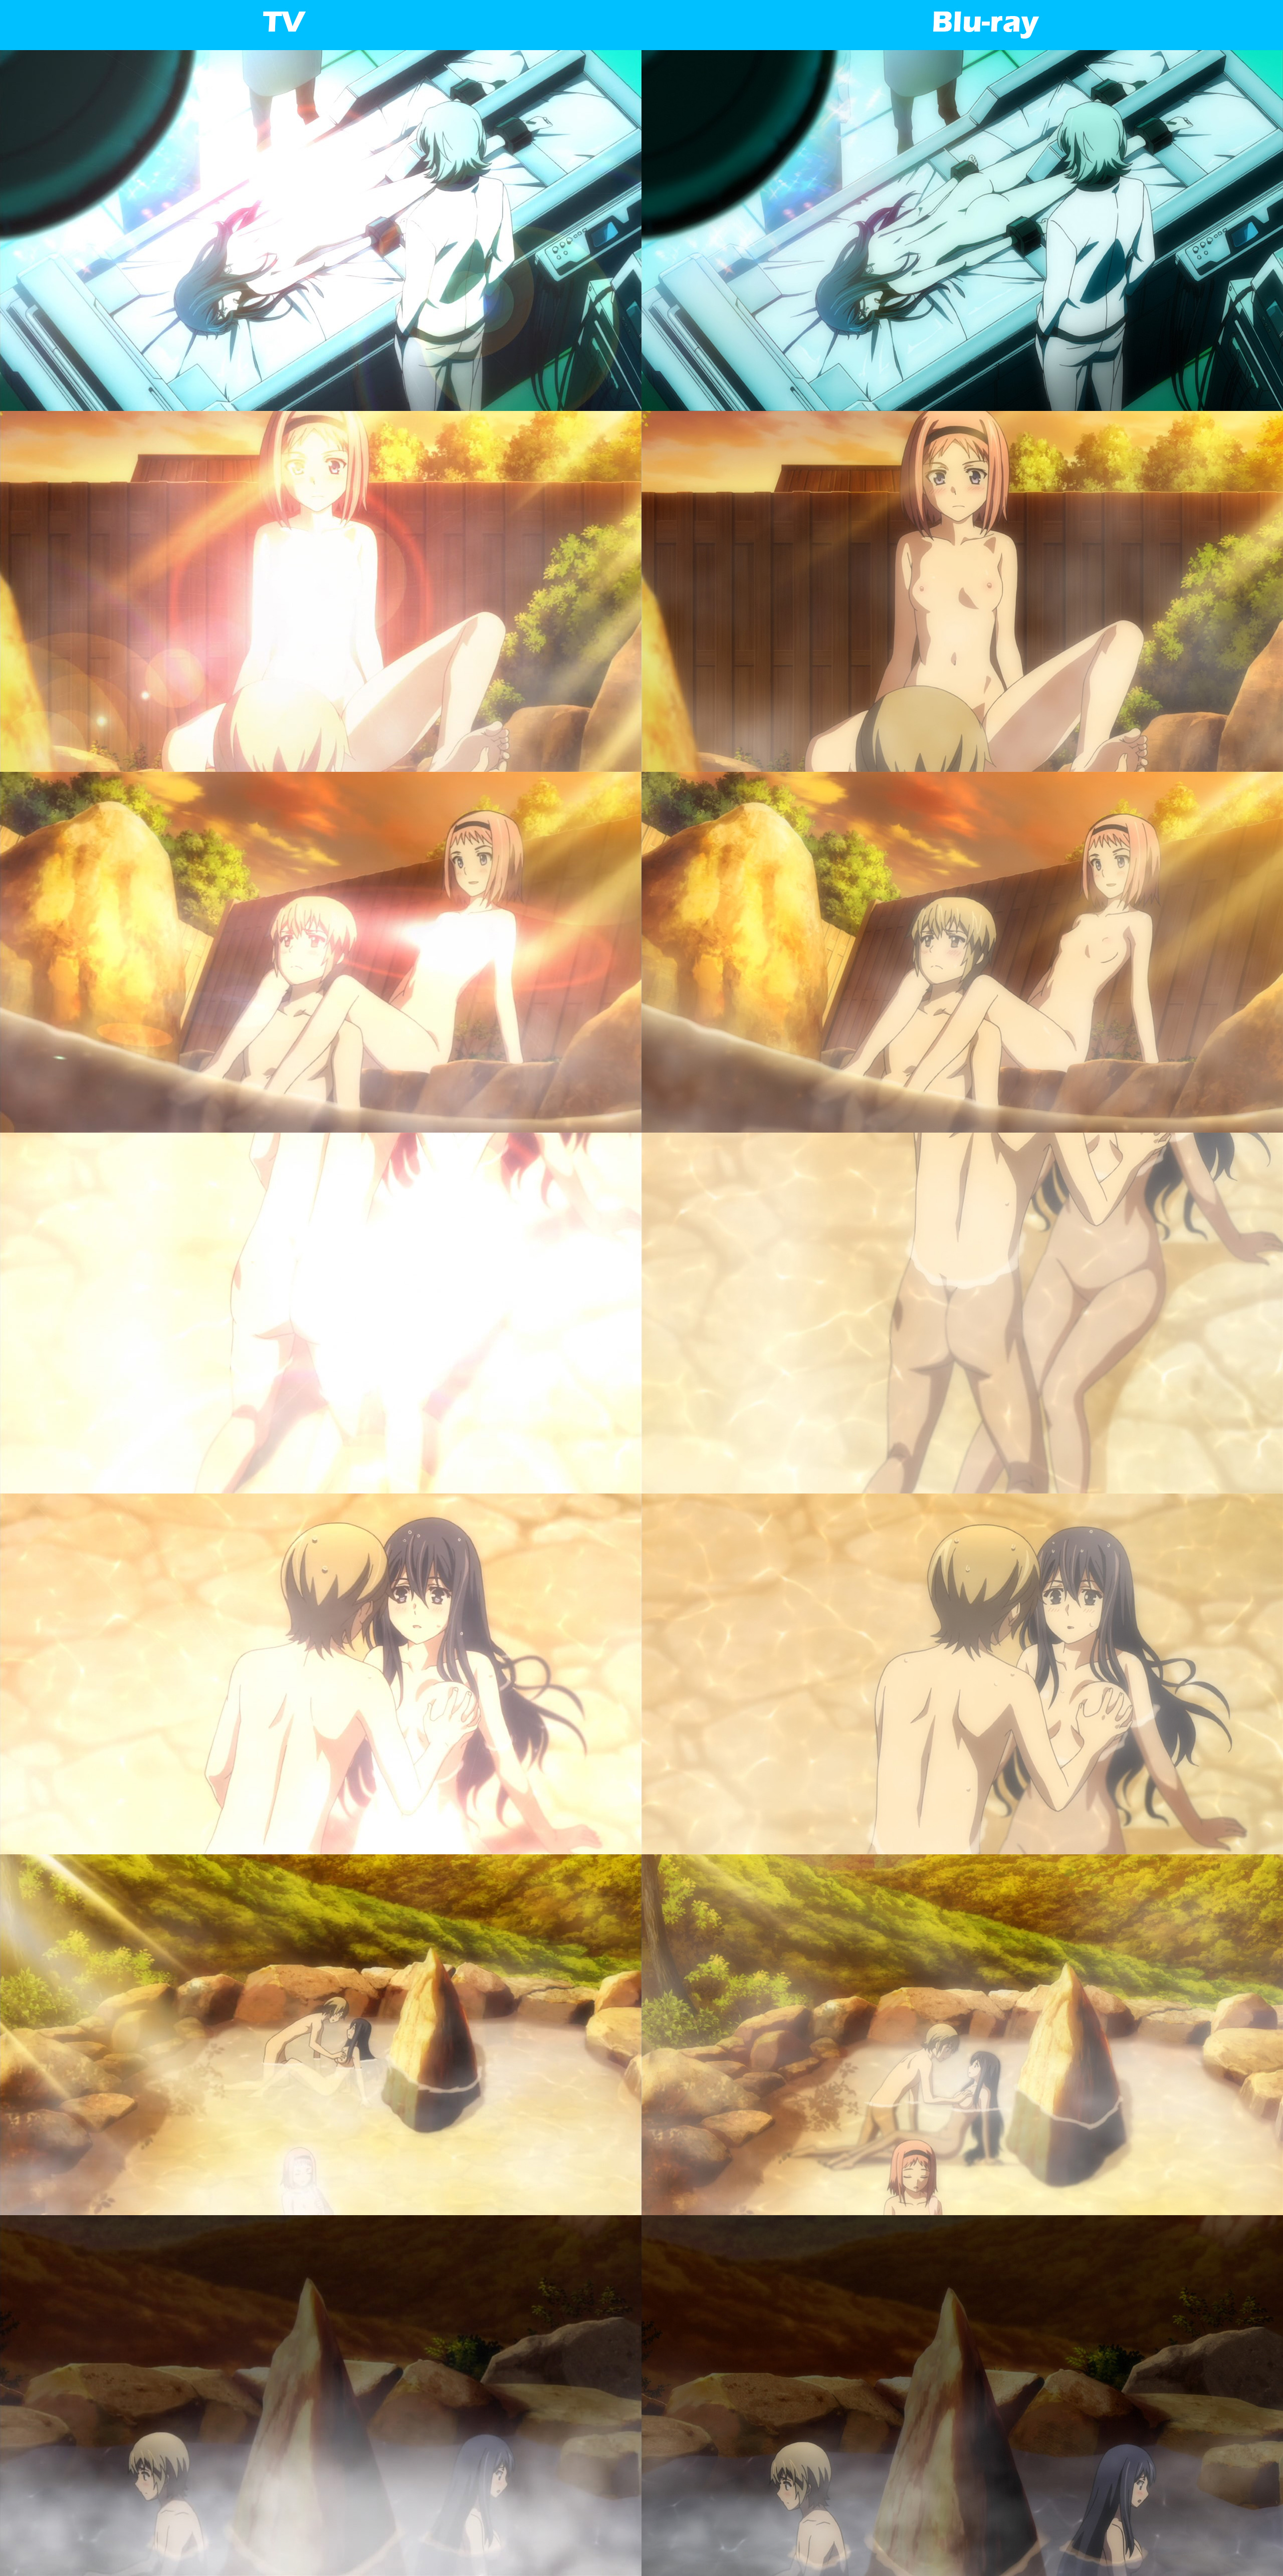 Gokukoku-no-Brynhildr-TV-and-Blu-ray-Comparisons-Nudity-1